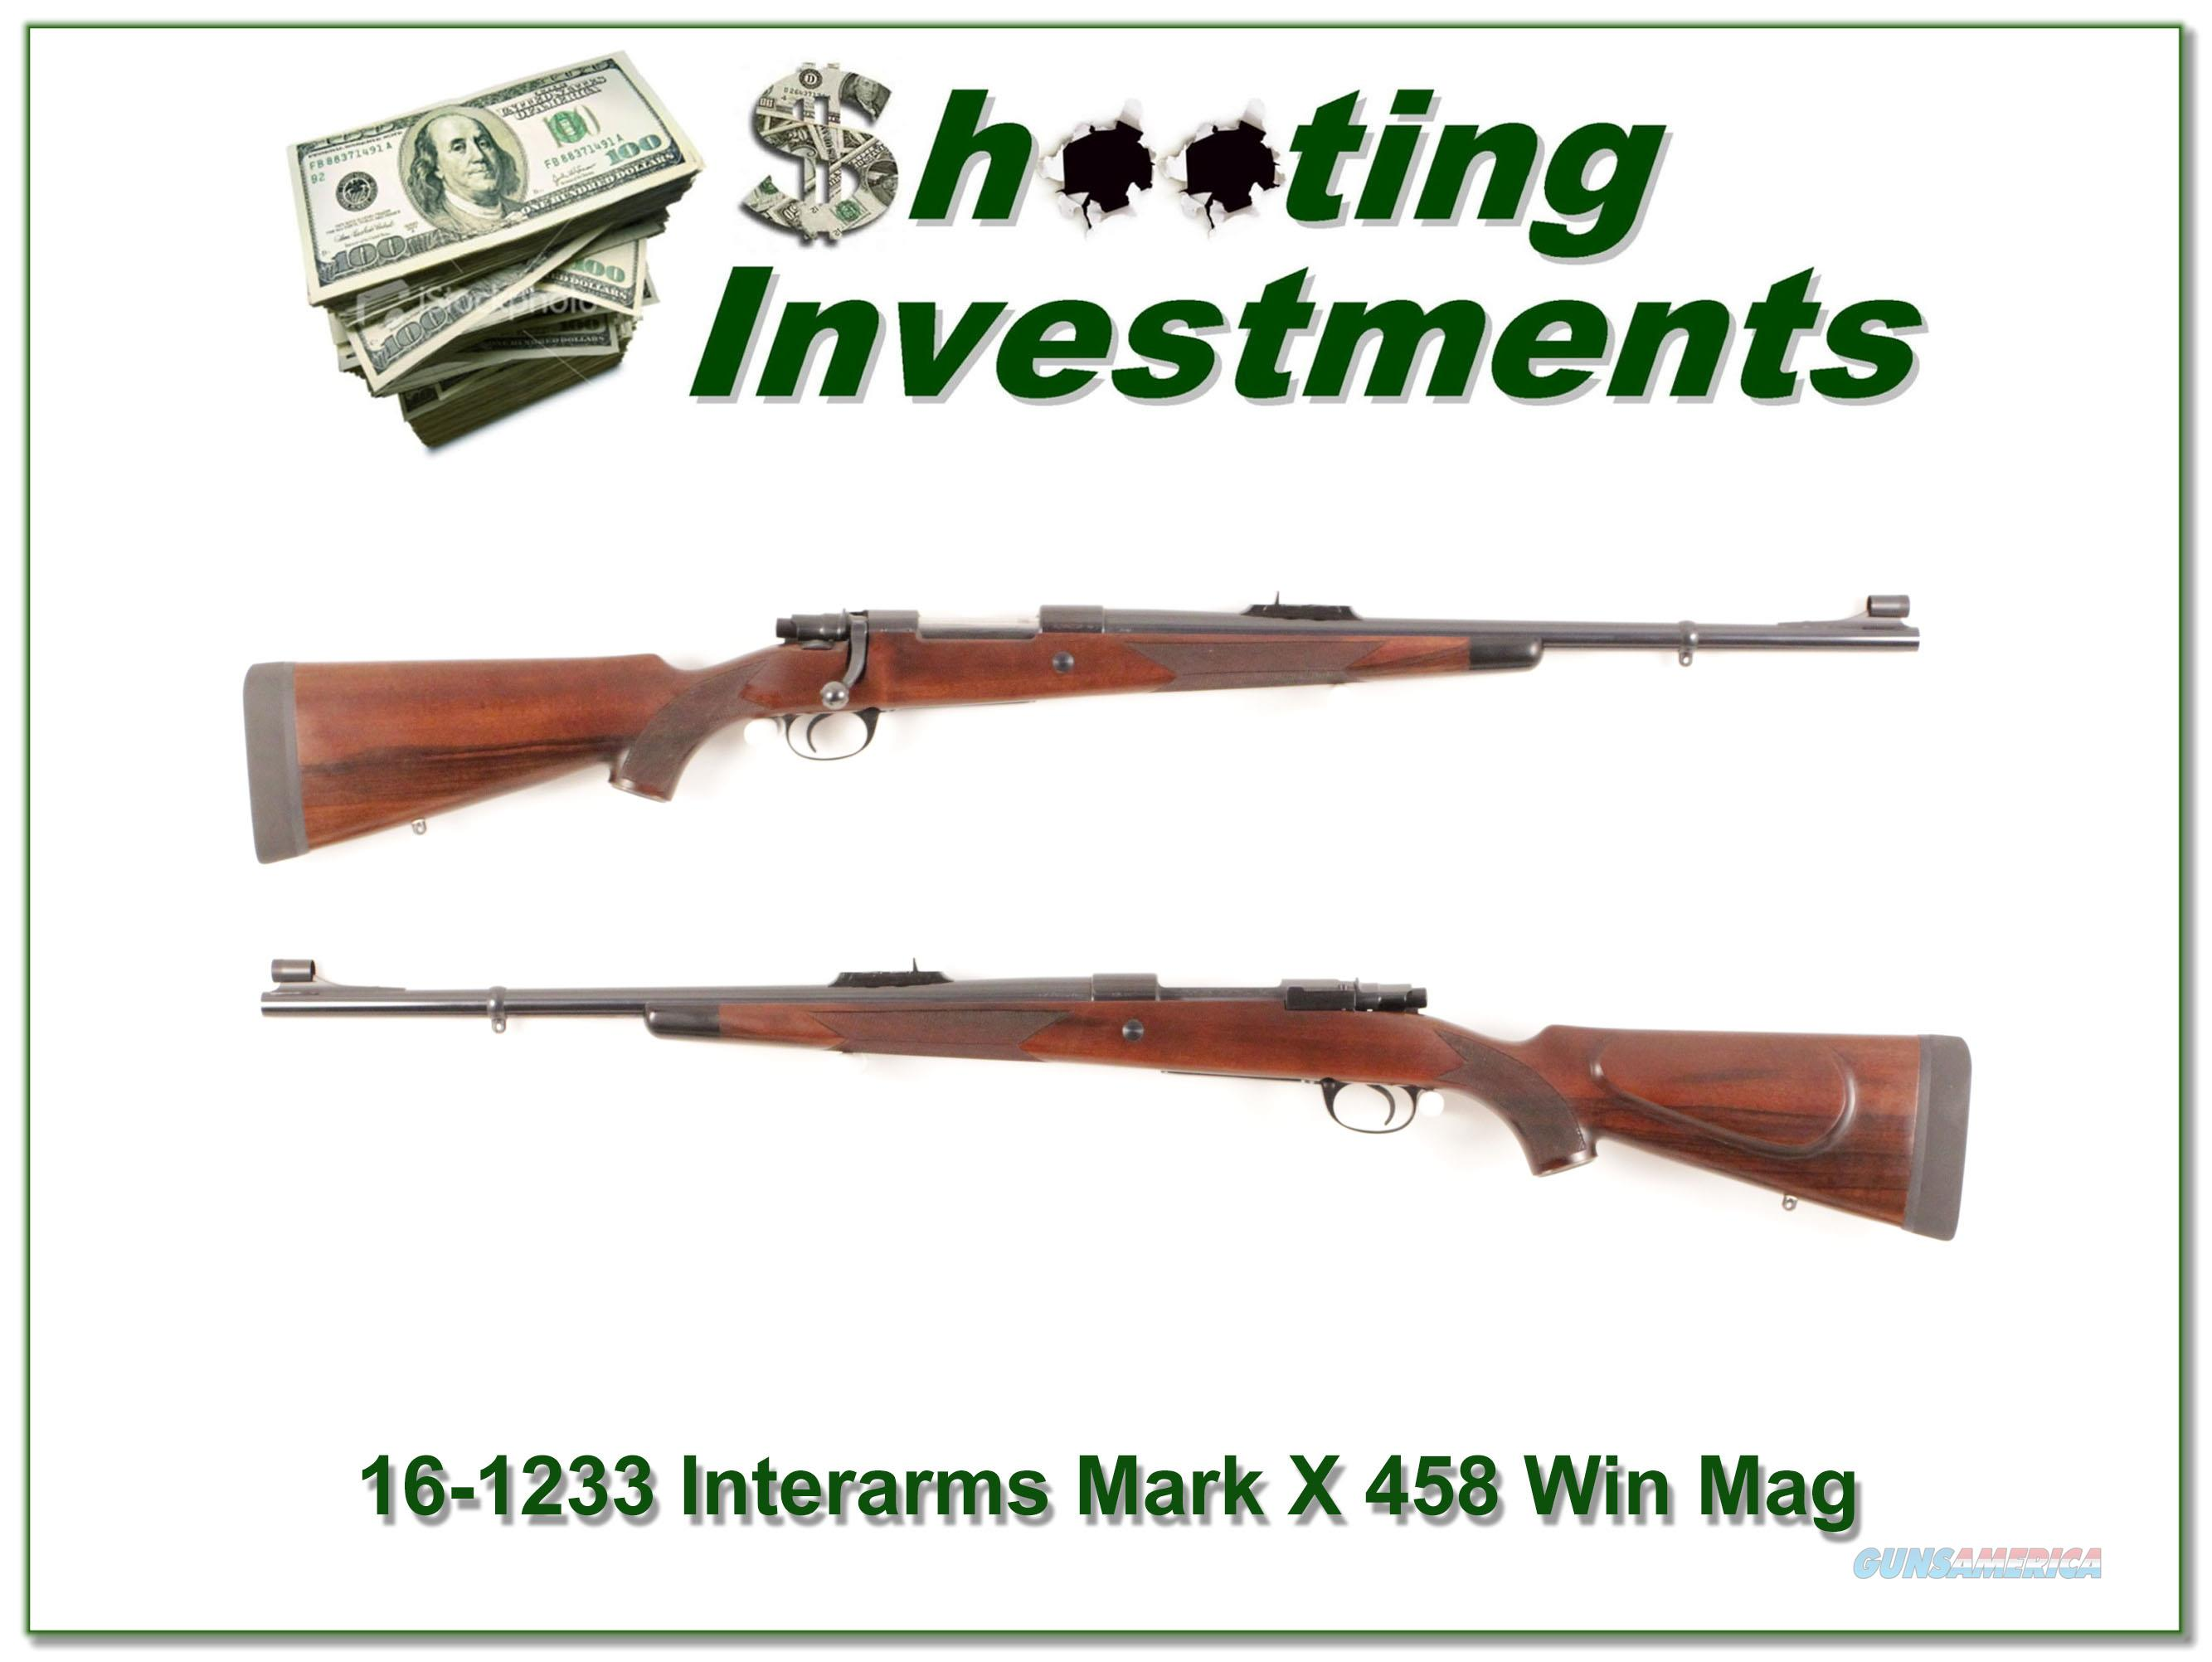 CZ Whitworth Interarms Mark X 458 Win!  Guns > Rifles > IJ Misc Rifles